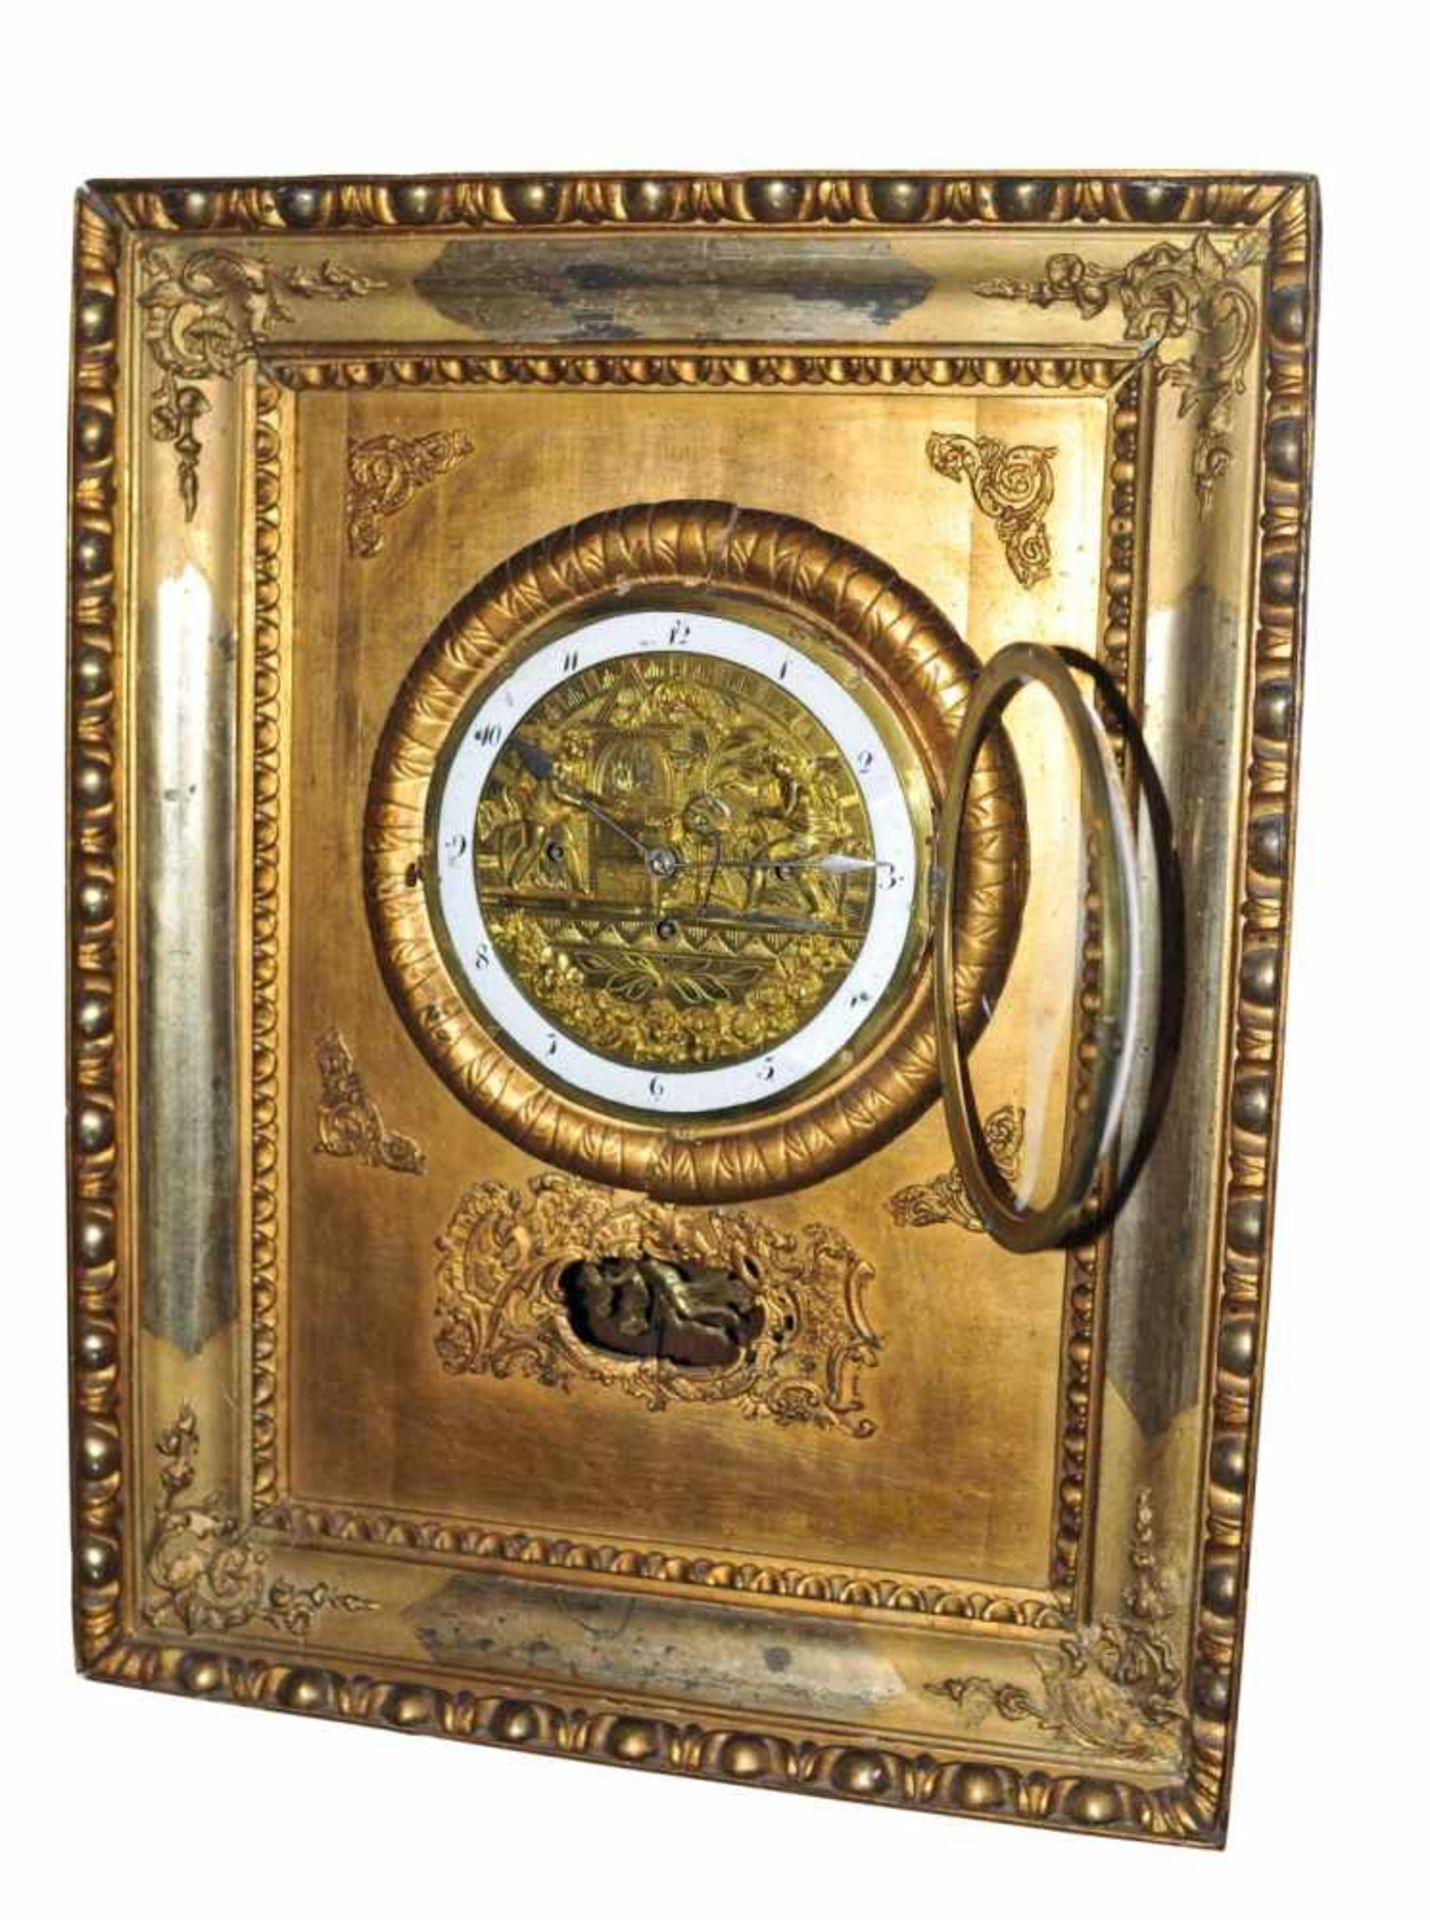 Los 73 - Vienna Frame clockgold-plated frame clock with iron smith & iron grinder 4/4 hour striking on 2 gong